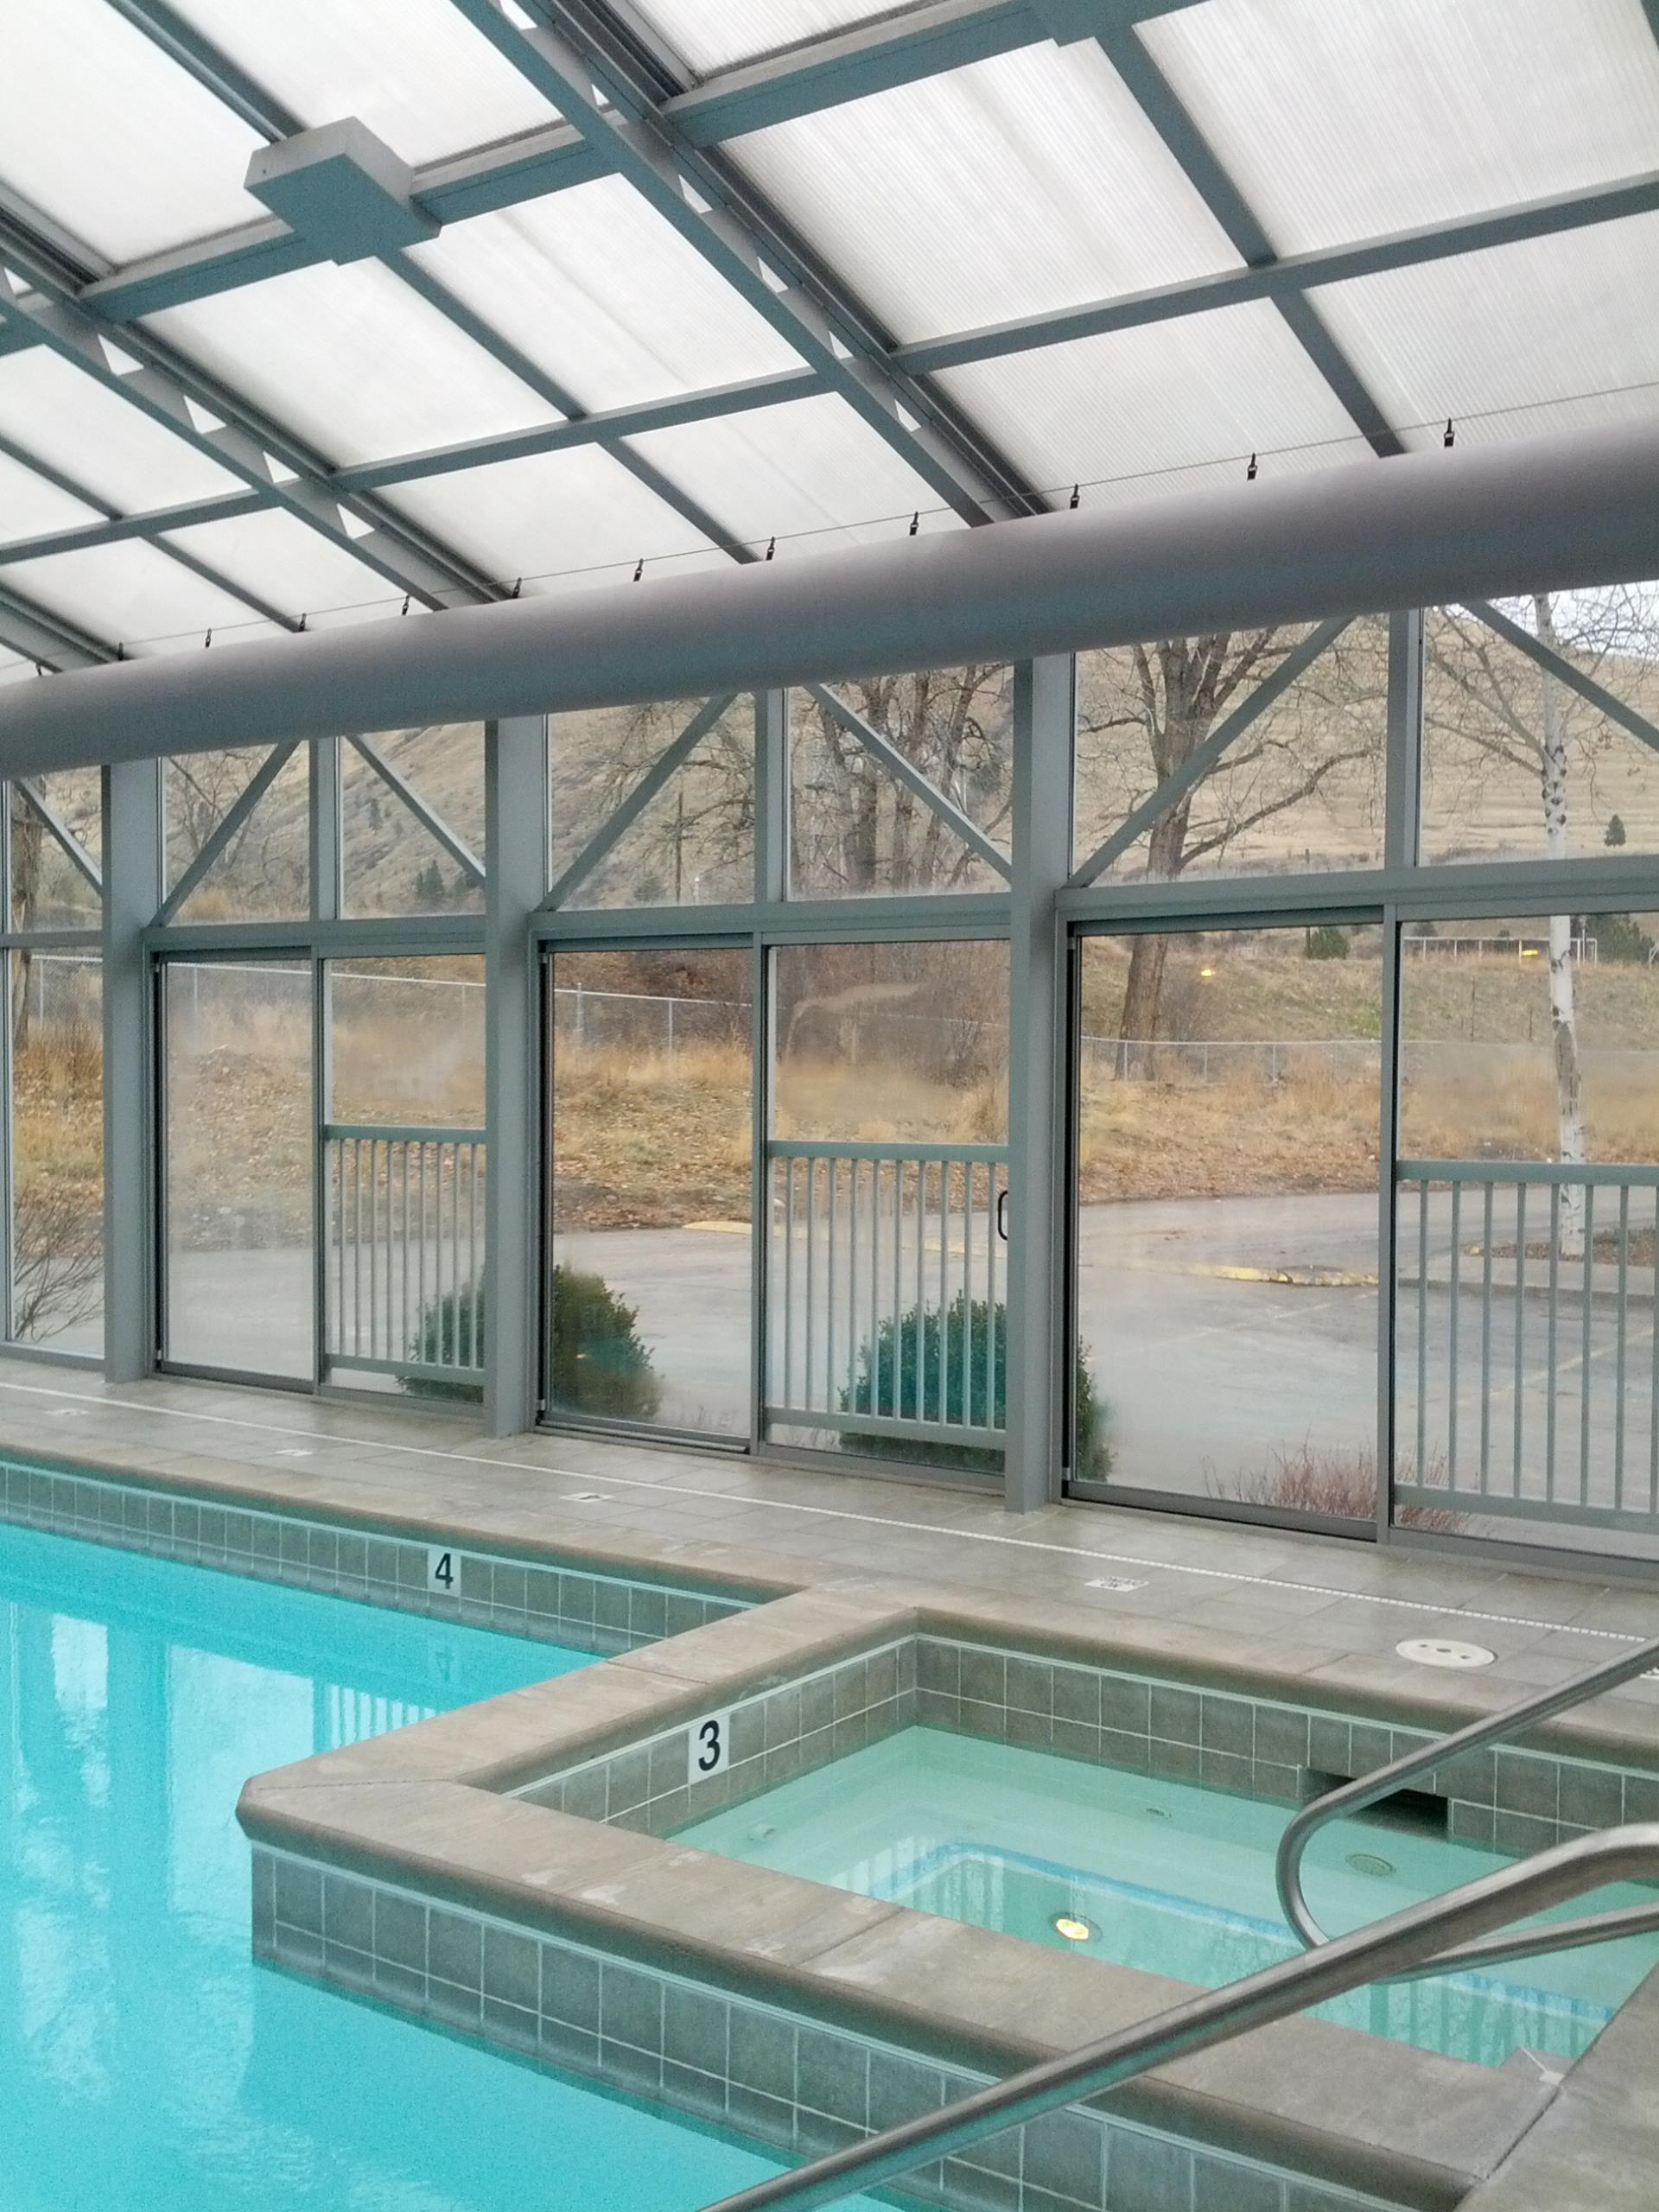 Spa and pool that have been inspected by the Missoula City-County Health Department.